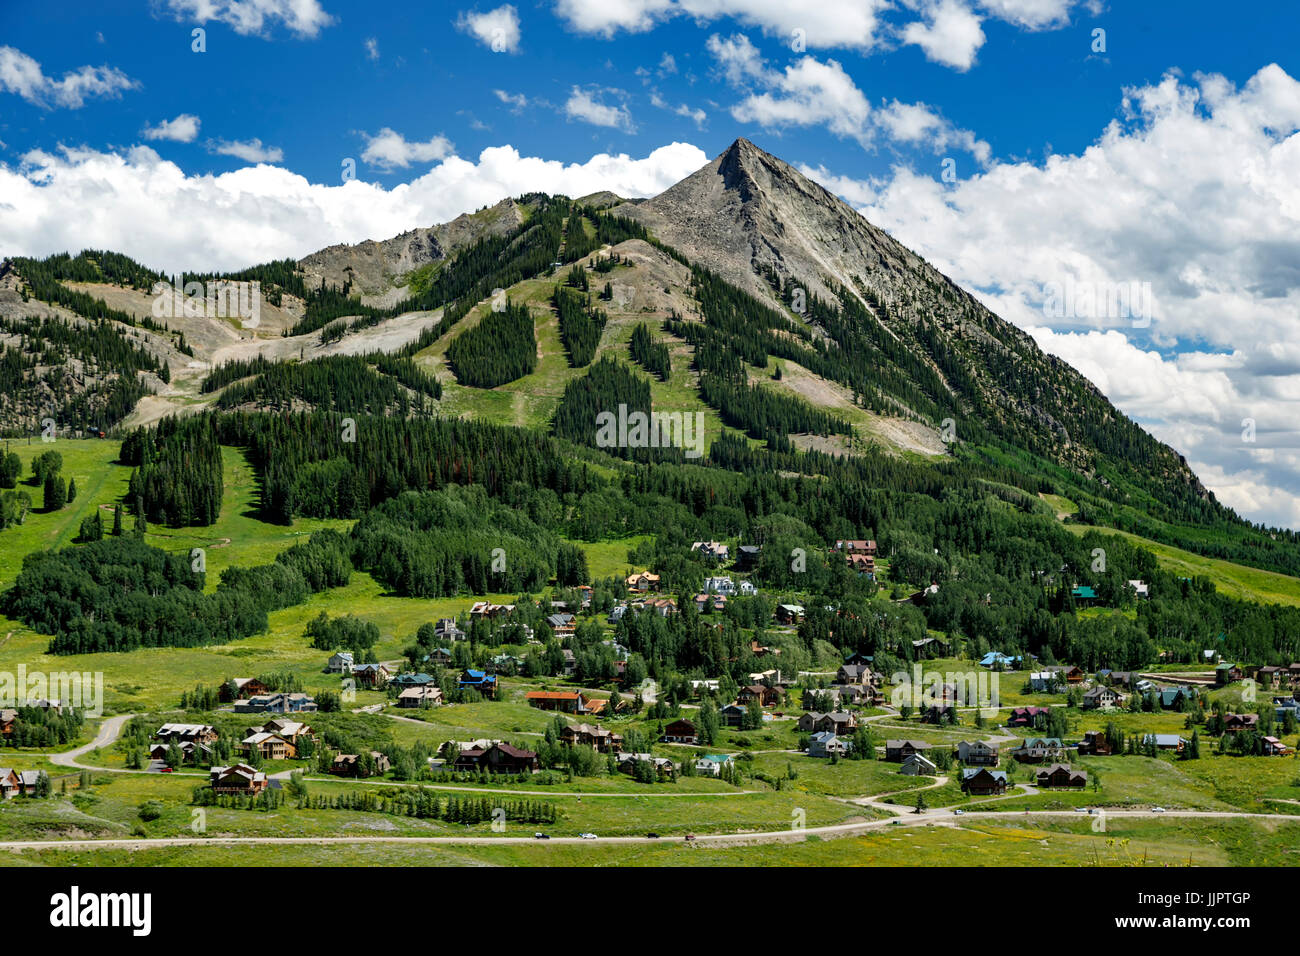 Village of Mount Crested Butte and Mount Crested Butte (12,162 ft.), near Crested Butte, Colorado USA - Stock Image